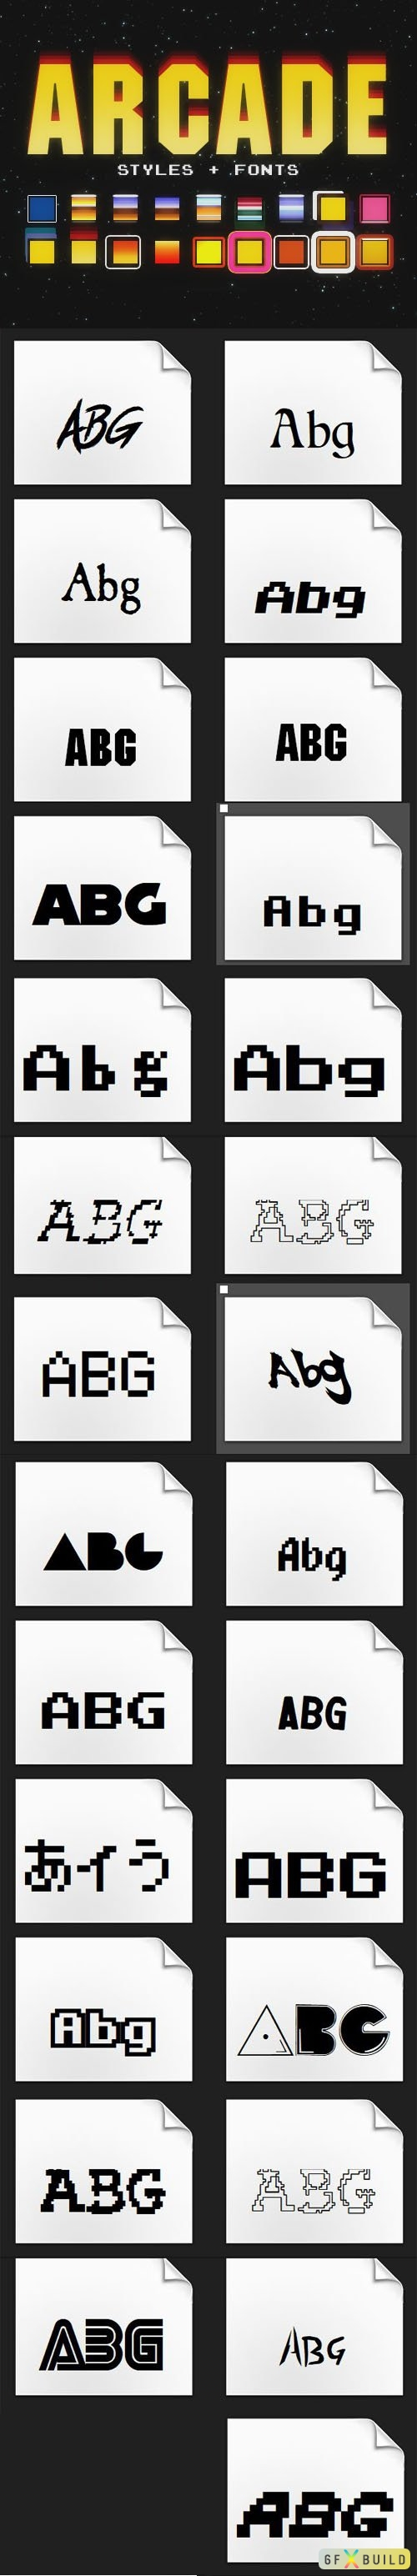 Arcade Pack - 27 Fonts & 18 Photoshop Styles